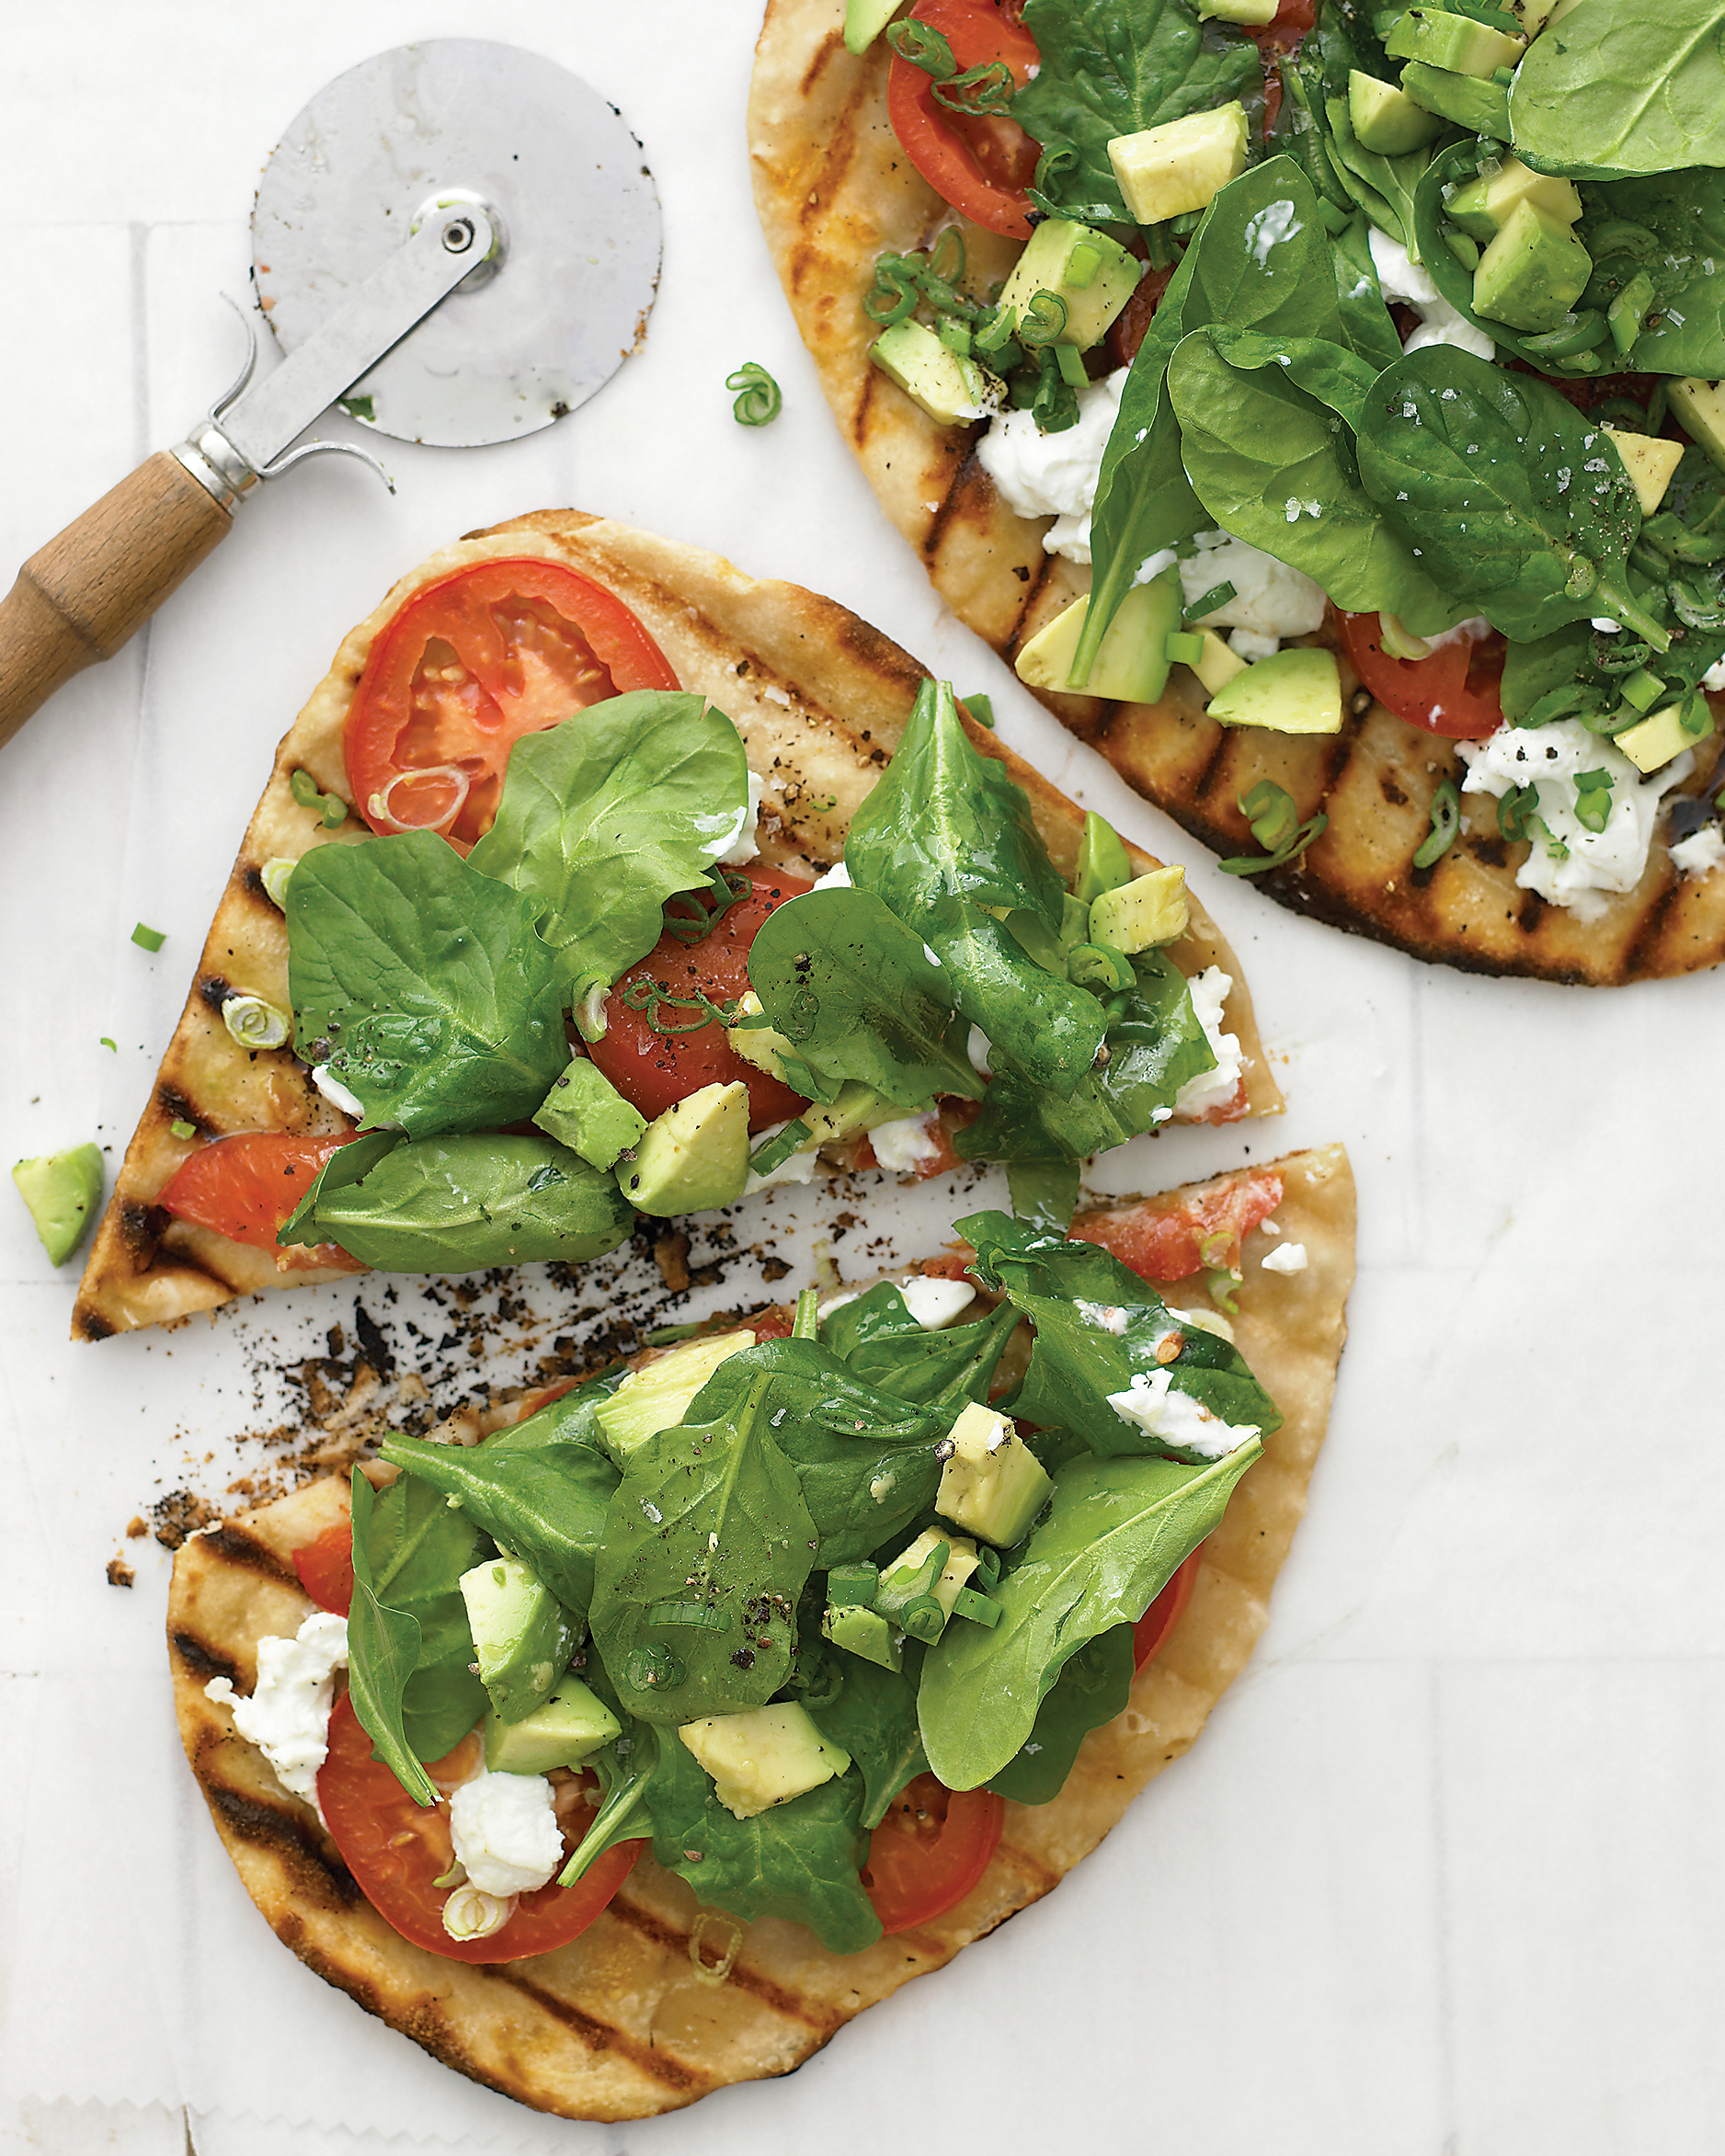 West Coast Grilled Vegetable Pizza